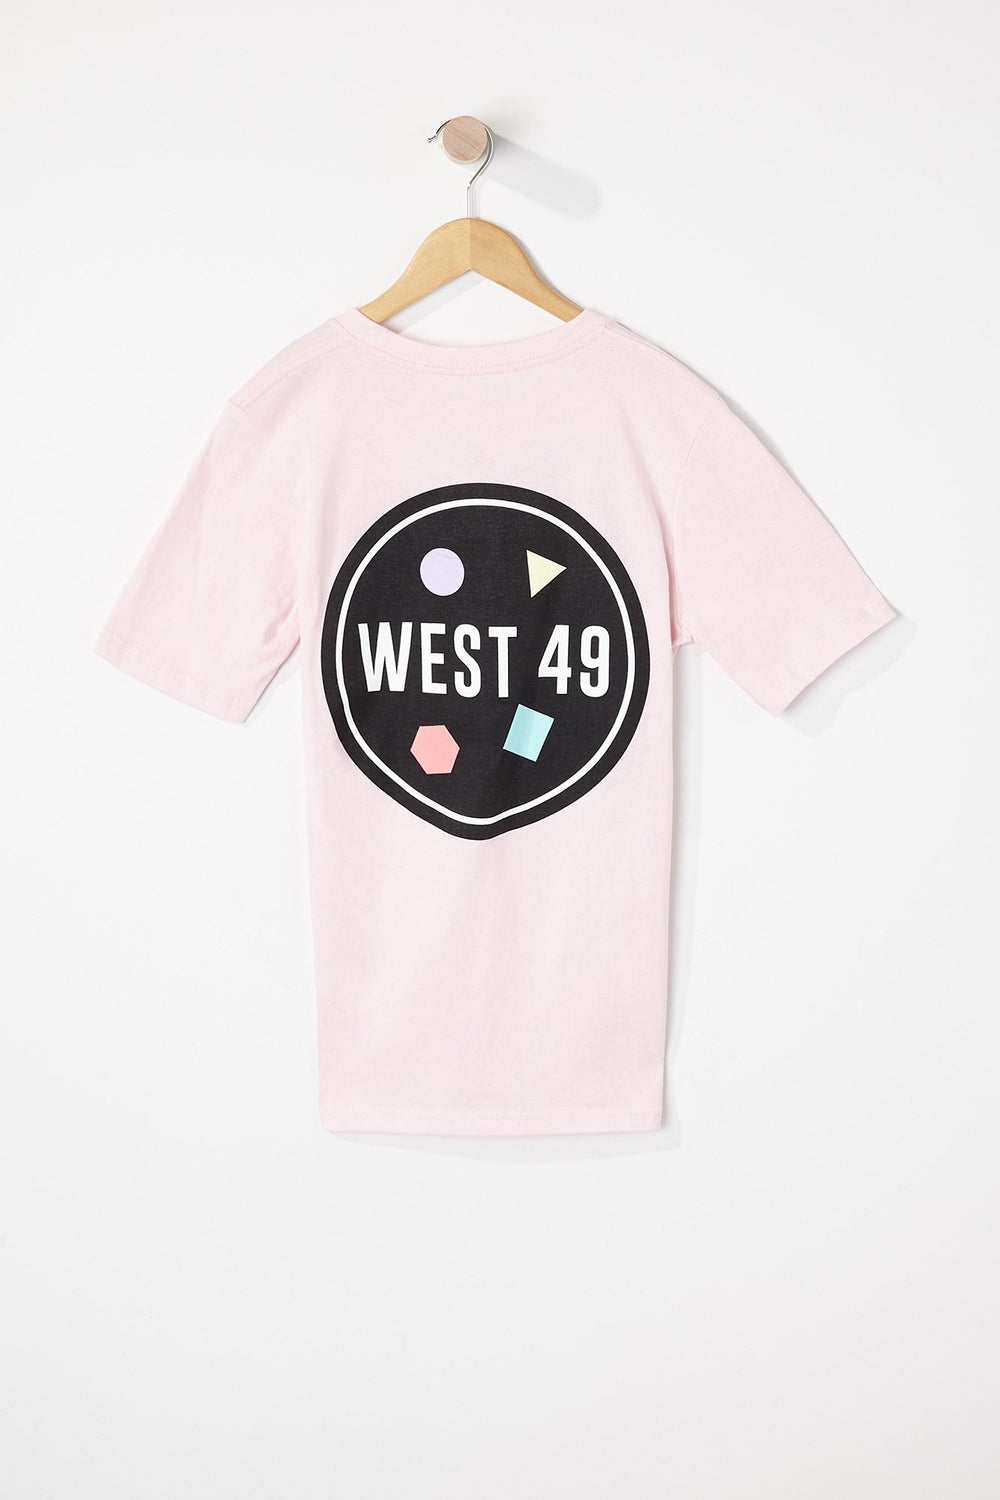 West49 Boys Circle Logo T-Shirt Light Pink